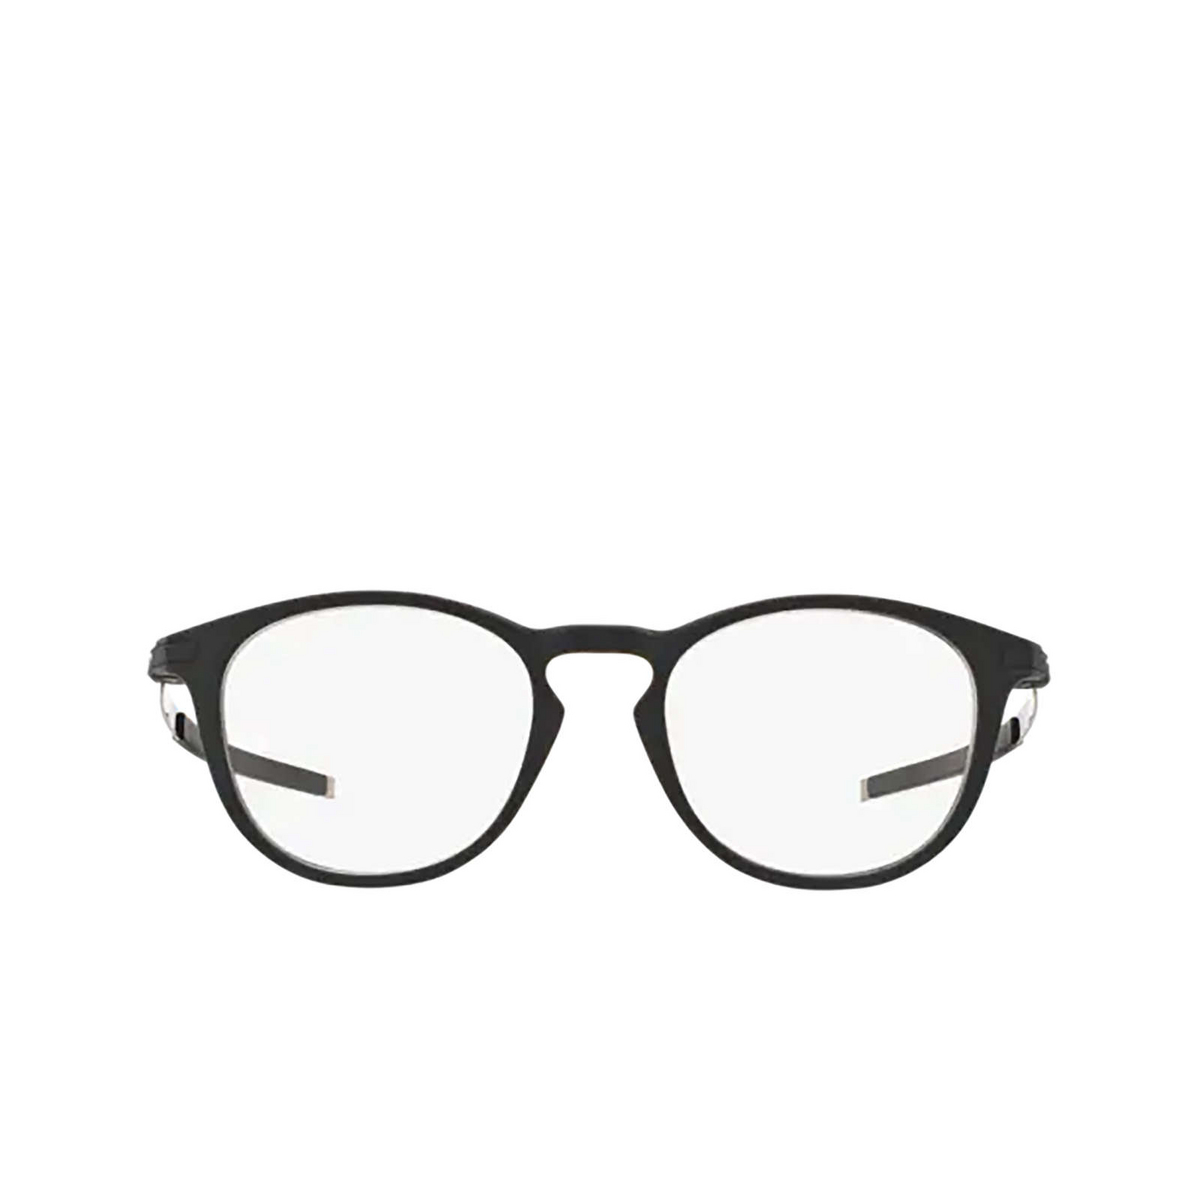 Oakley® Round Eyeglasses: Pitchman R OX8105 color Satin Black 810501 - front view.